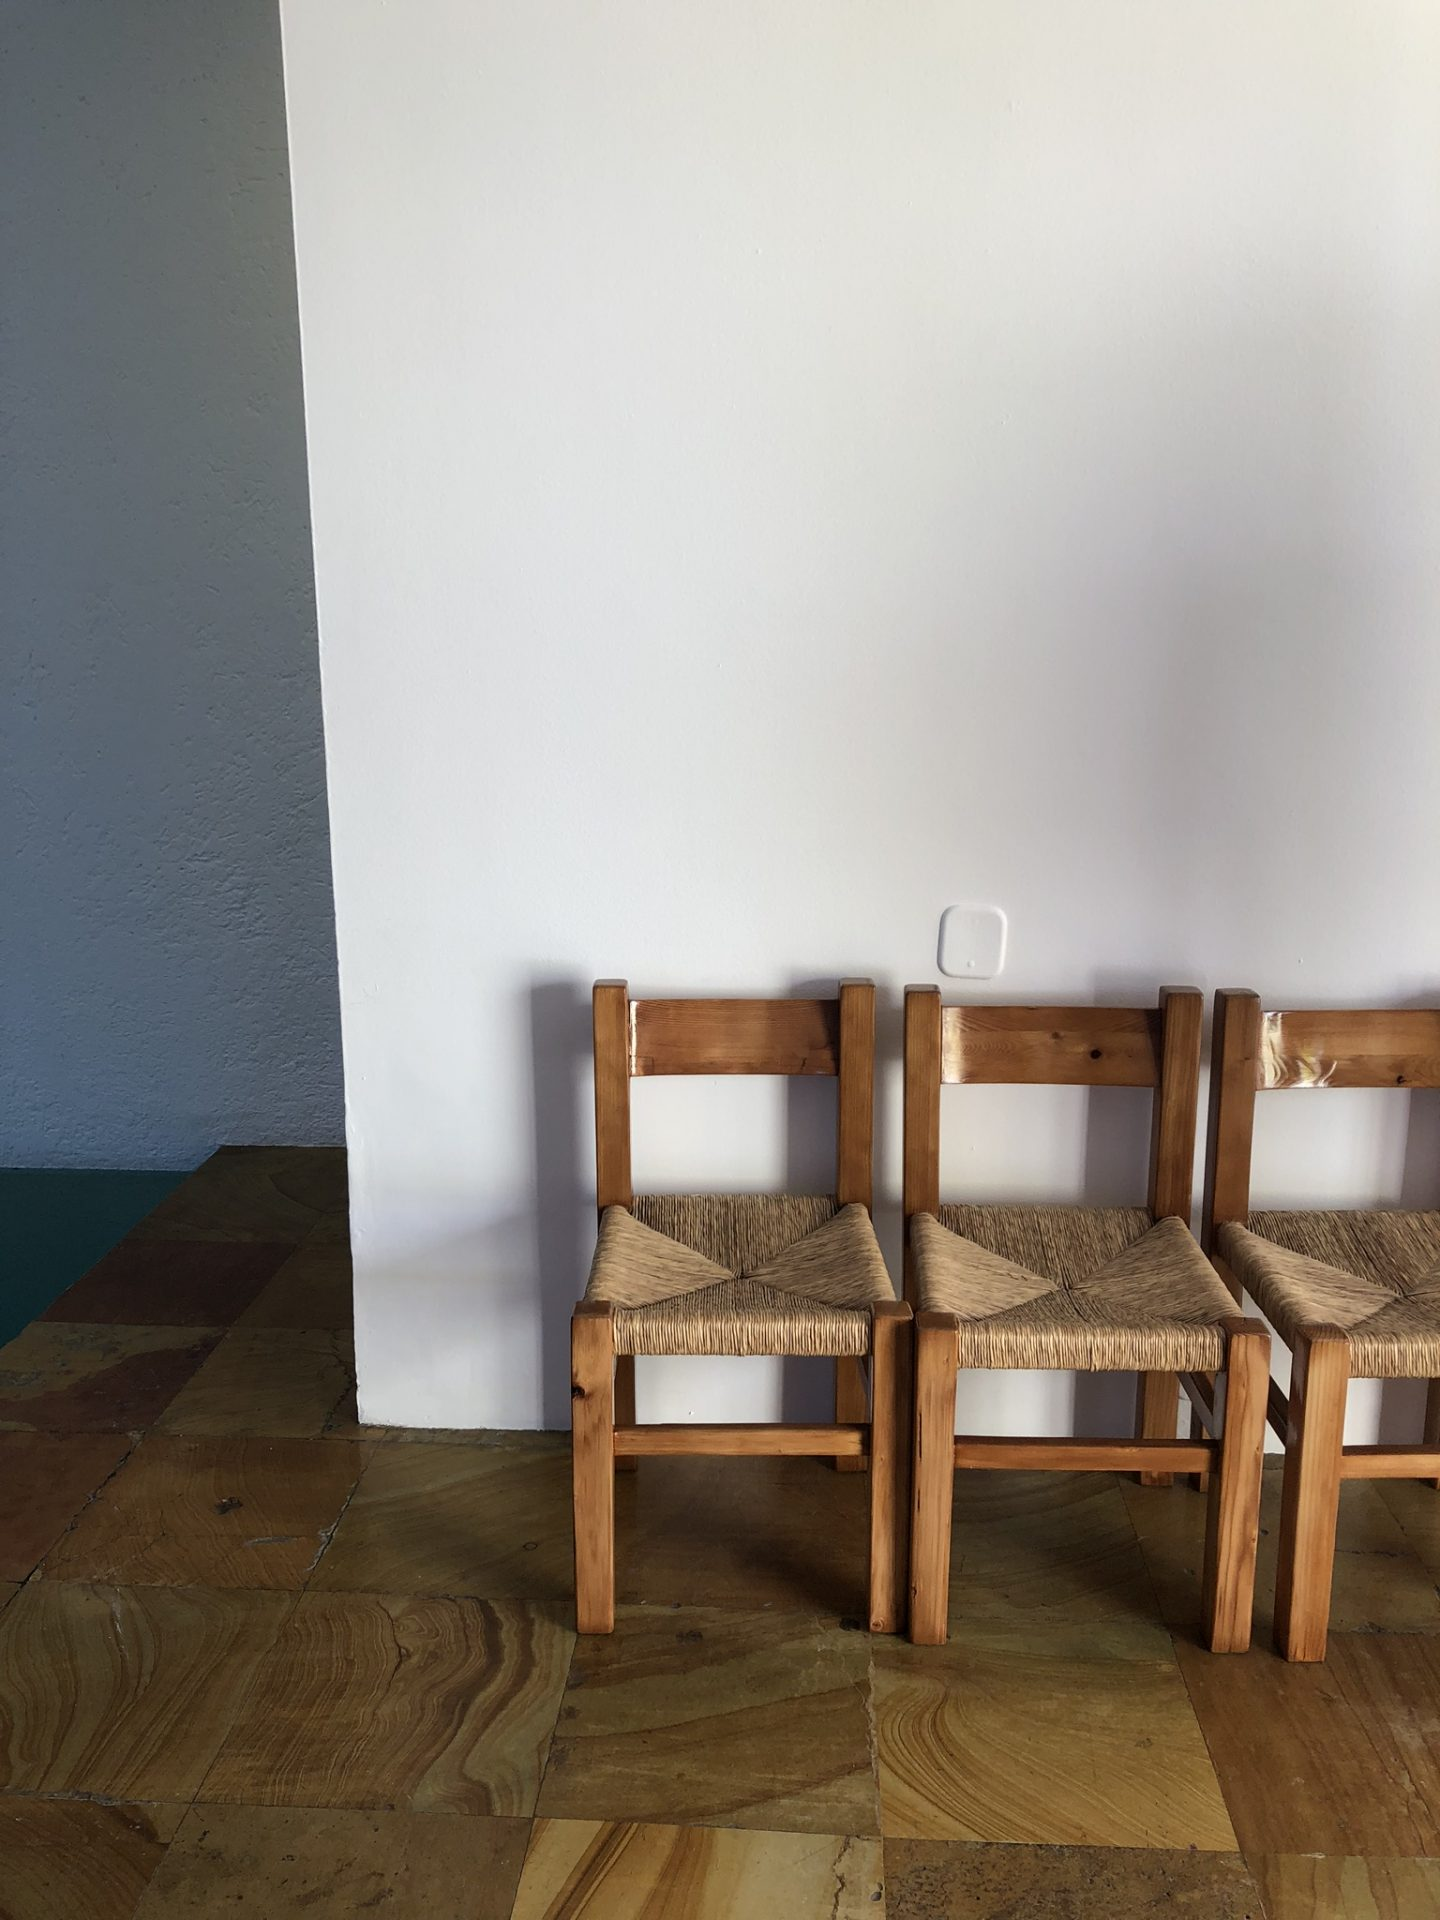 Chairs in the house, Mexico City